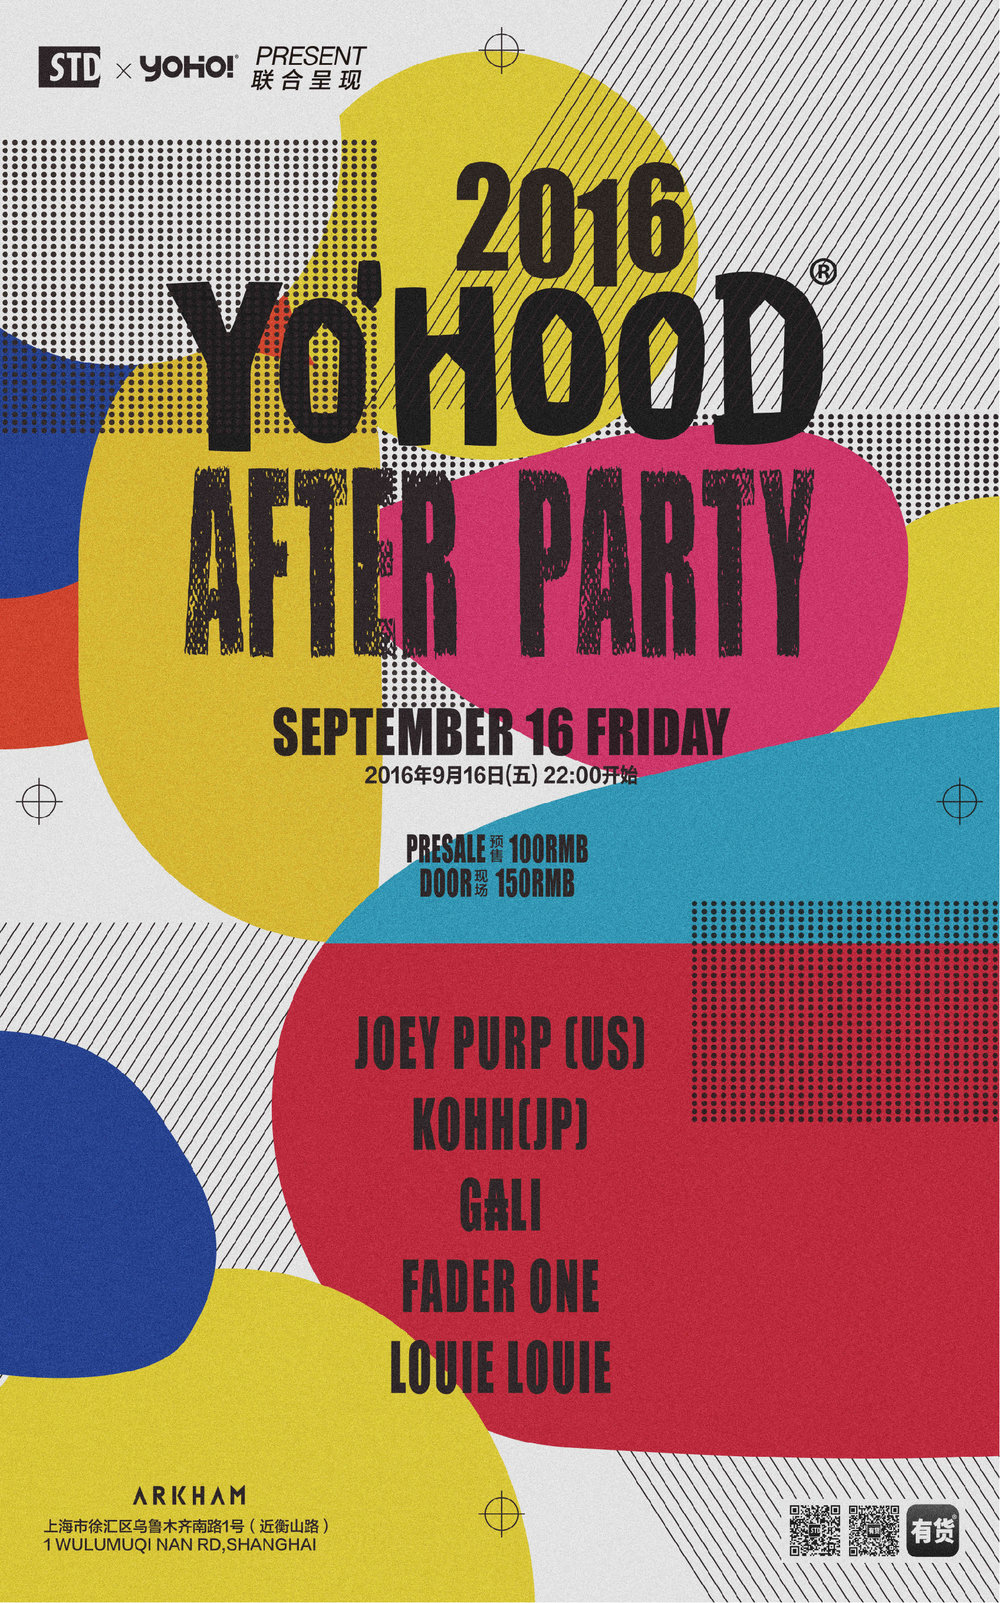 YOHOOD AFTER PARTY-01 final2-01 (1).jpg